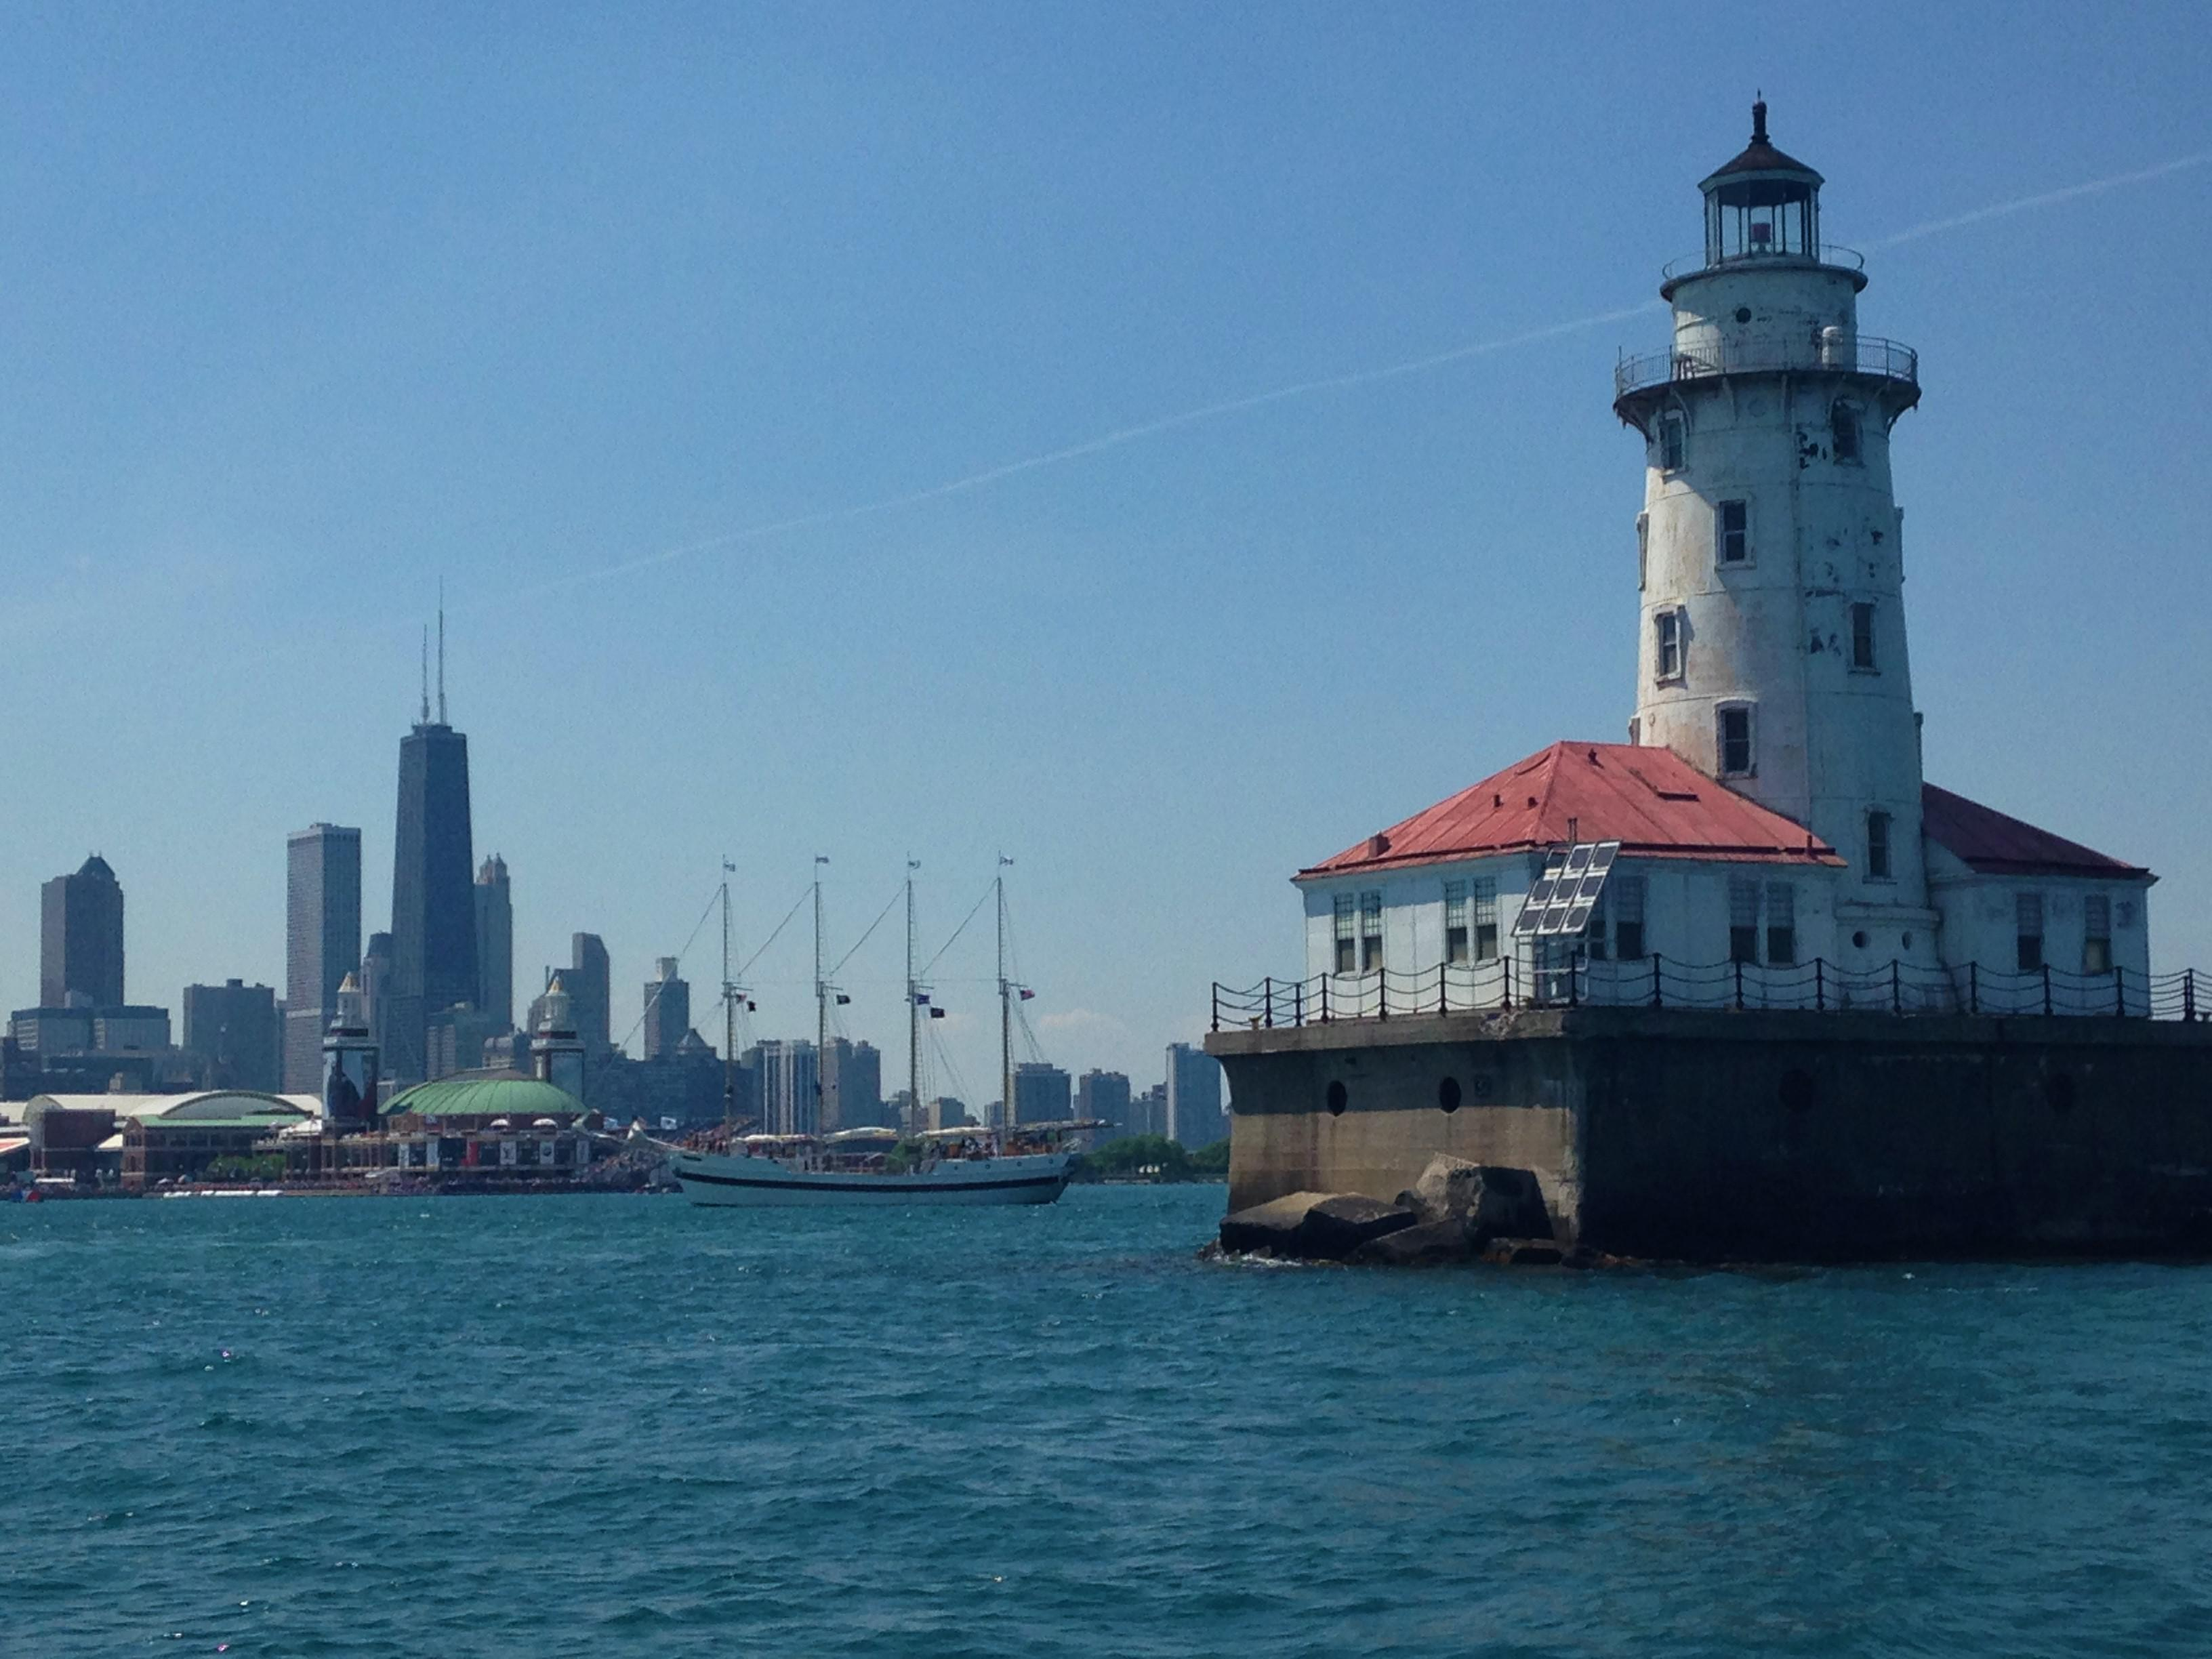 Navy Pier Lighthouse and Chicago Skyline Photo by Josh  : navy pier lighthouse and chicago skyline photo by josh moulton 0182 from www.chairish.com size 3264 x 2448 jpeg 554kB